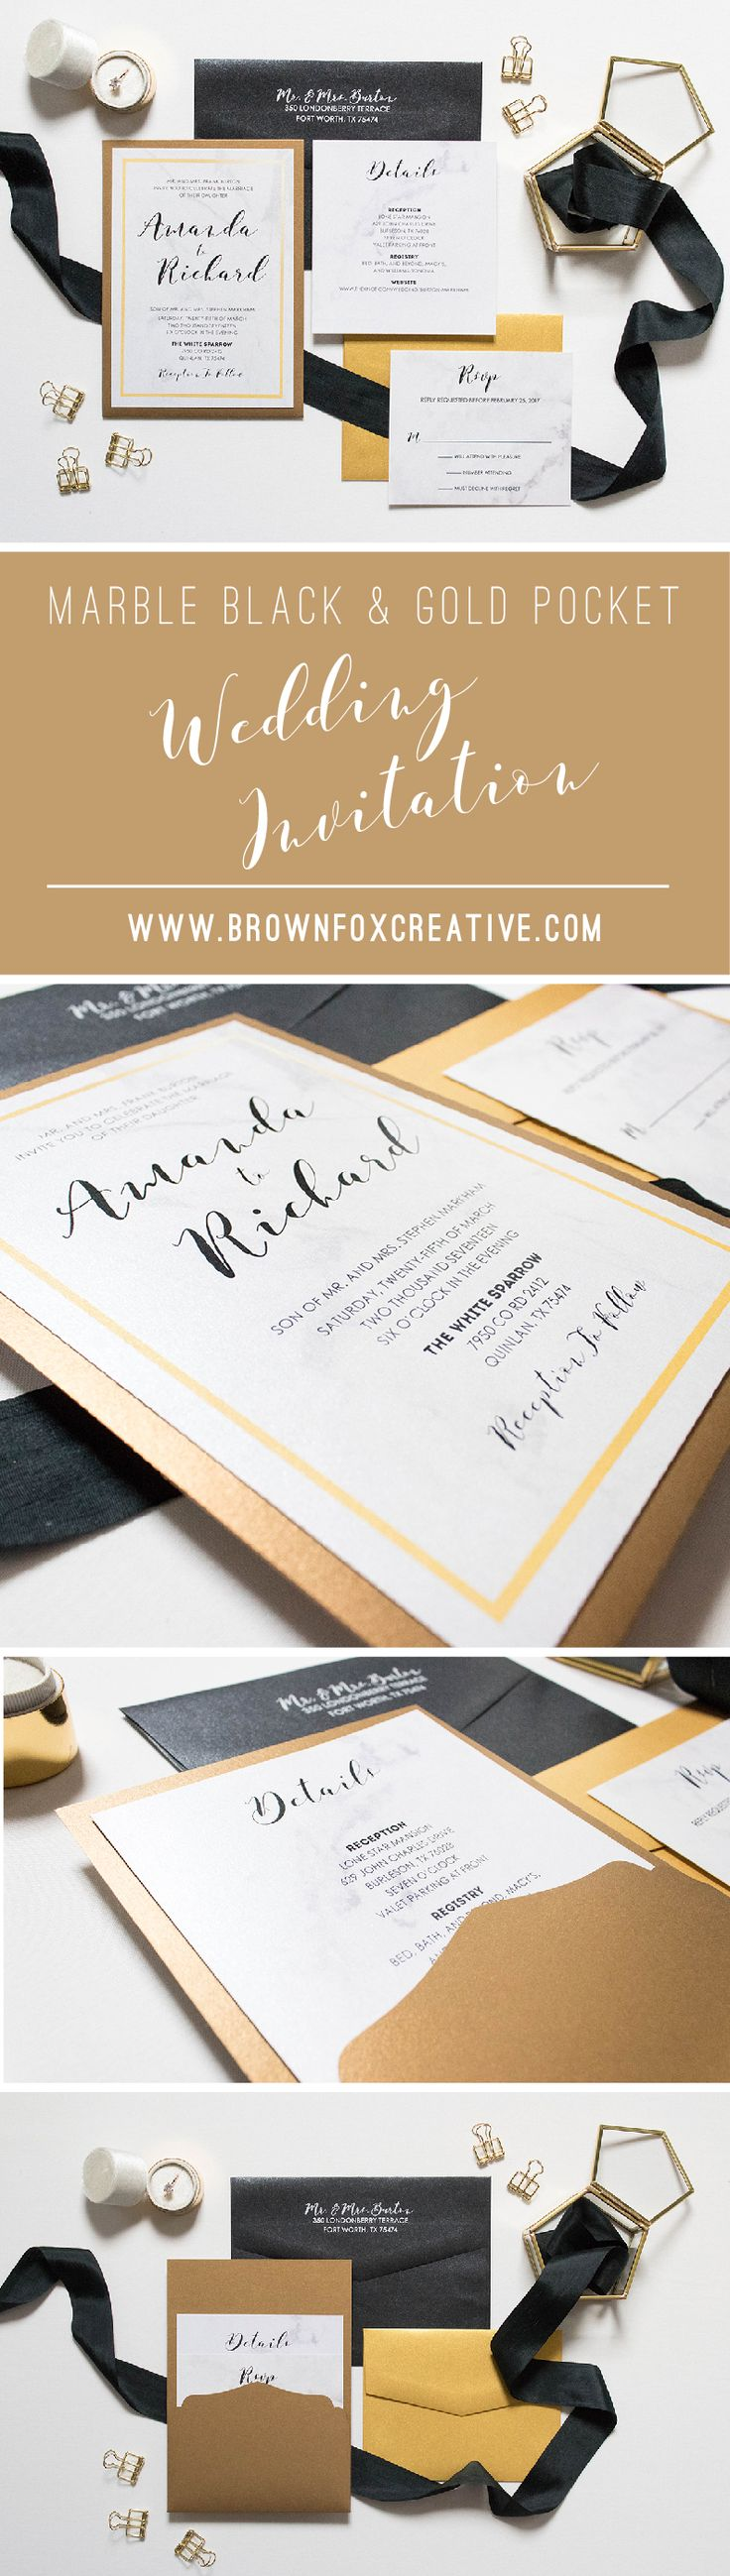 how to return address wedding envelopes%0A  x  Formal Back Pocket Marble Wedding Invitation in Black and Gold  u      Includes Inserts and Return